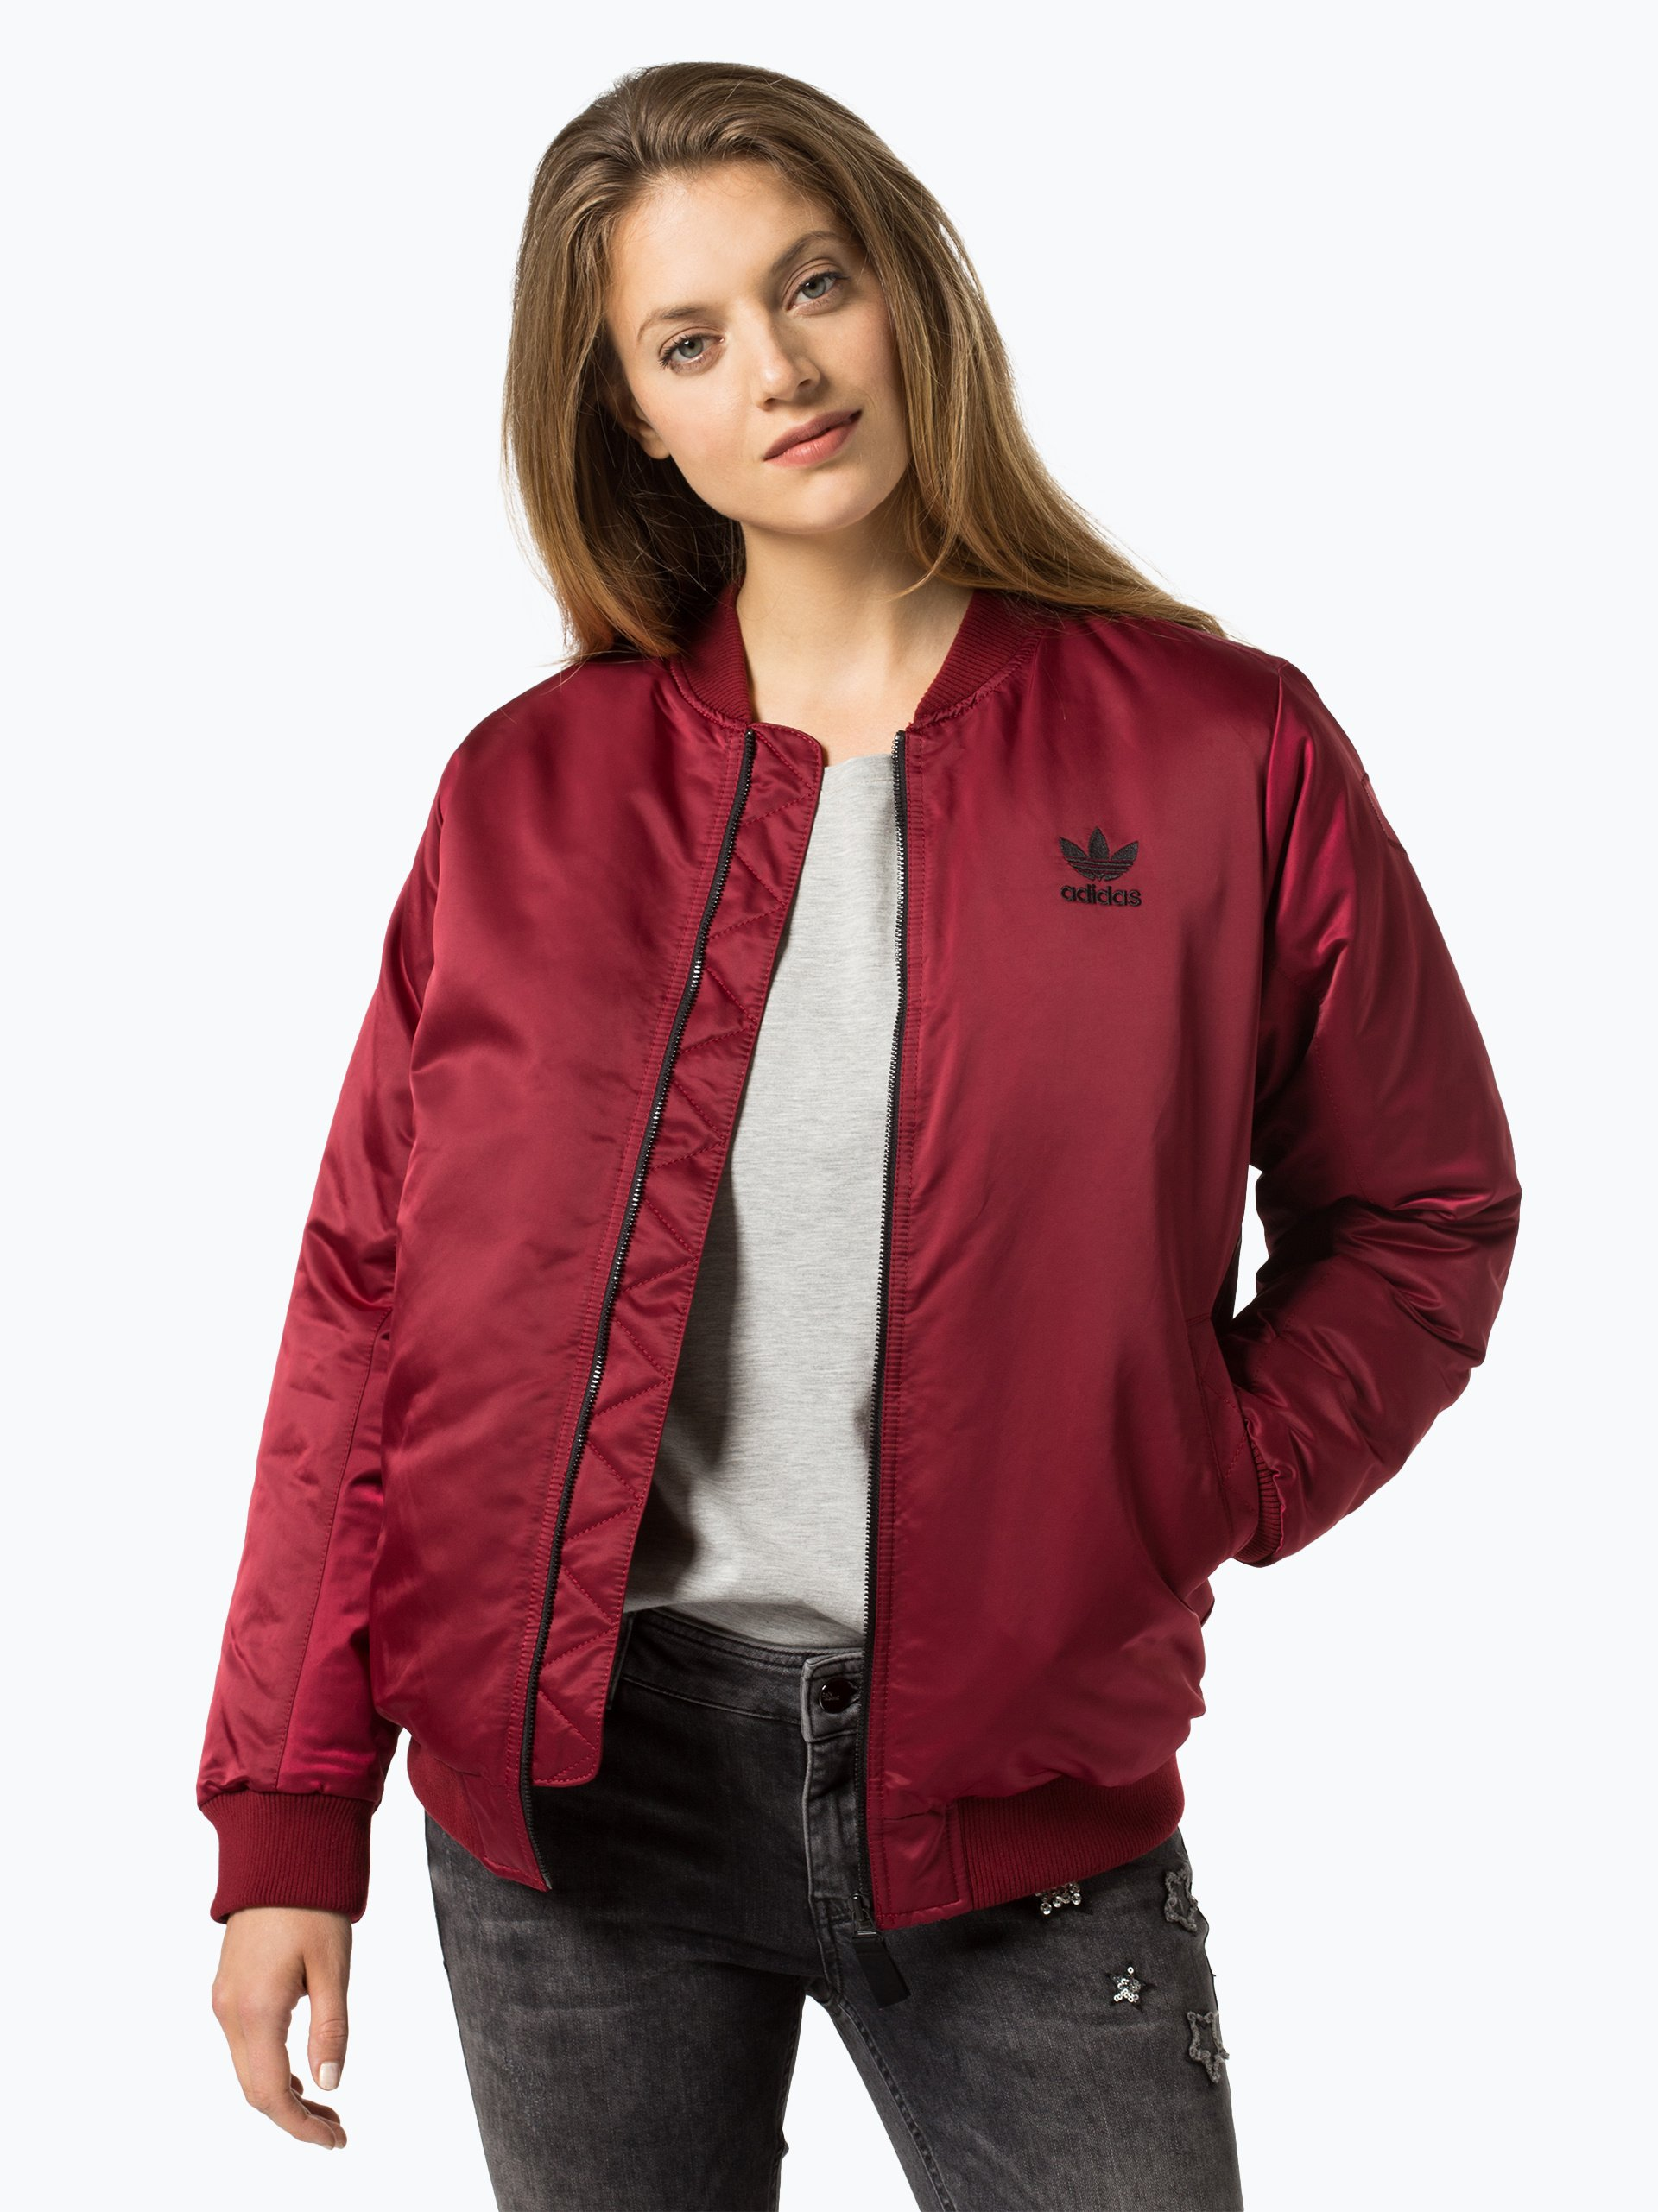 adidas originals damen jacke bordeaux uni online kaufen vangraaf com. Black Bedroom Furniture Sets. Home Design Ideas